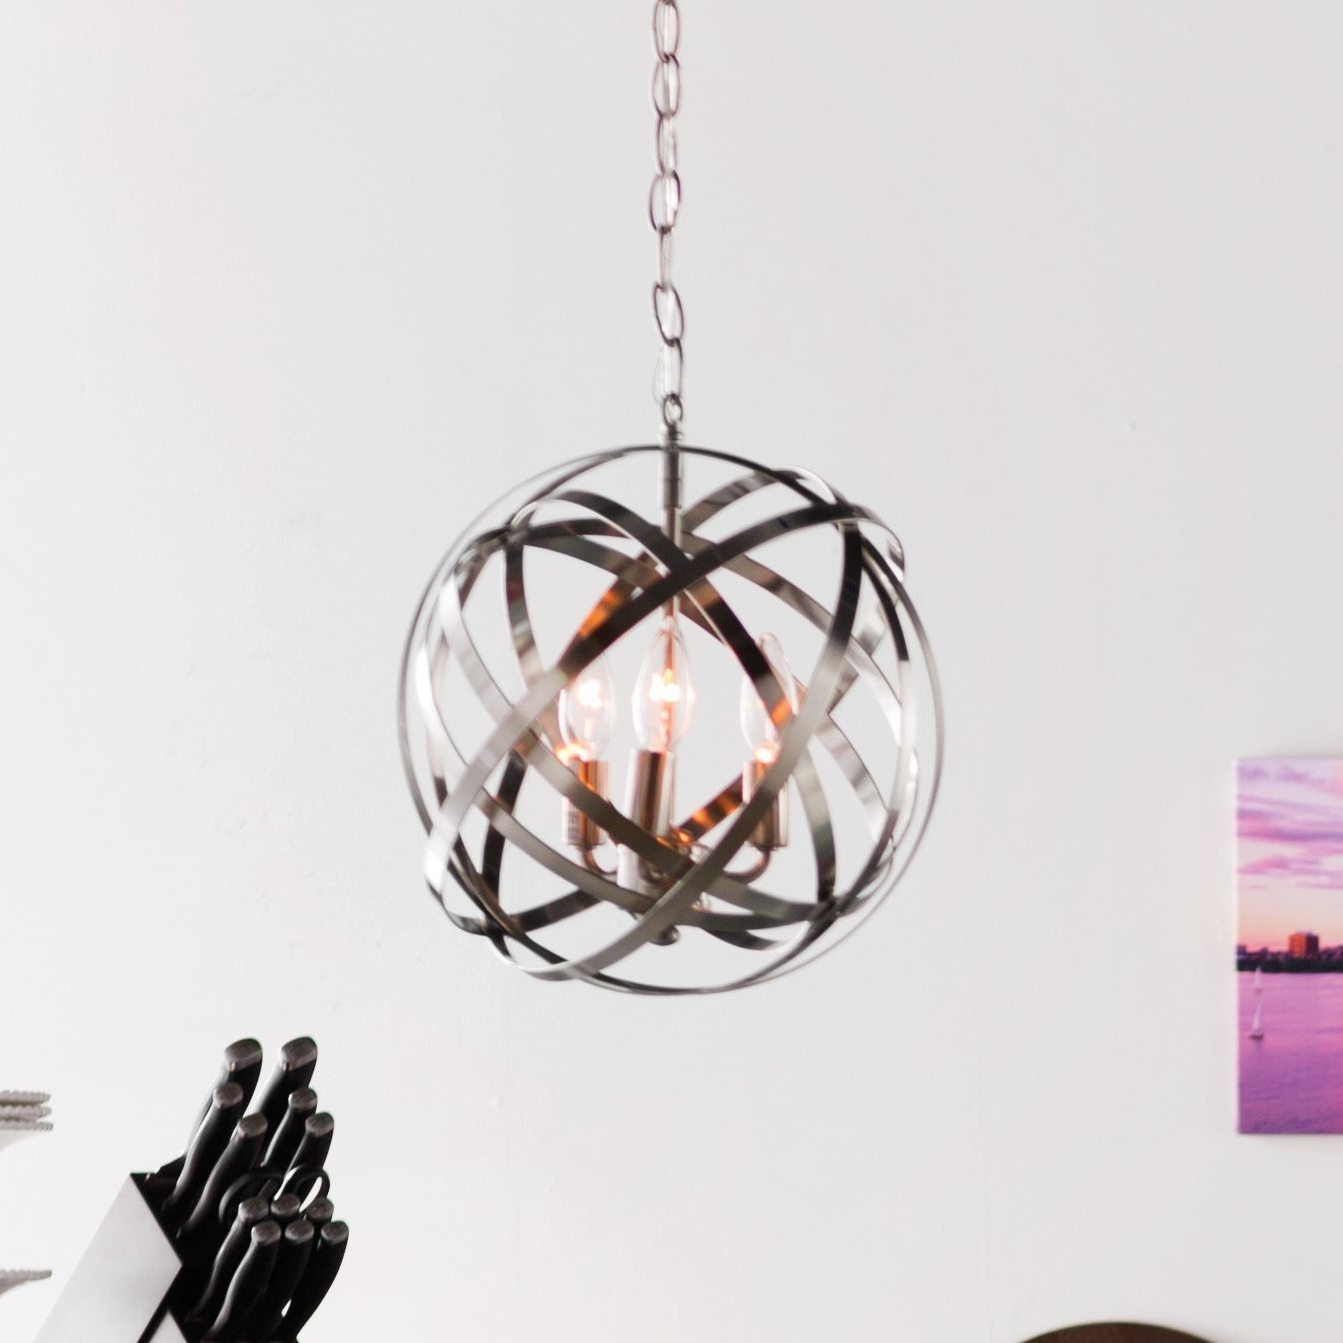 Dirksen 3 Light Single Cylinder Chandeliers Throughout Most Current Adcock 3 Light Single Globe Pendant (View 7 of 20)